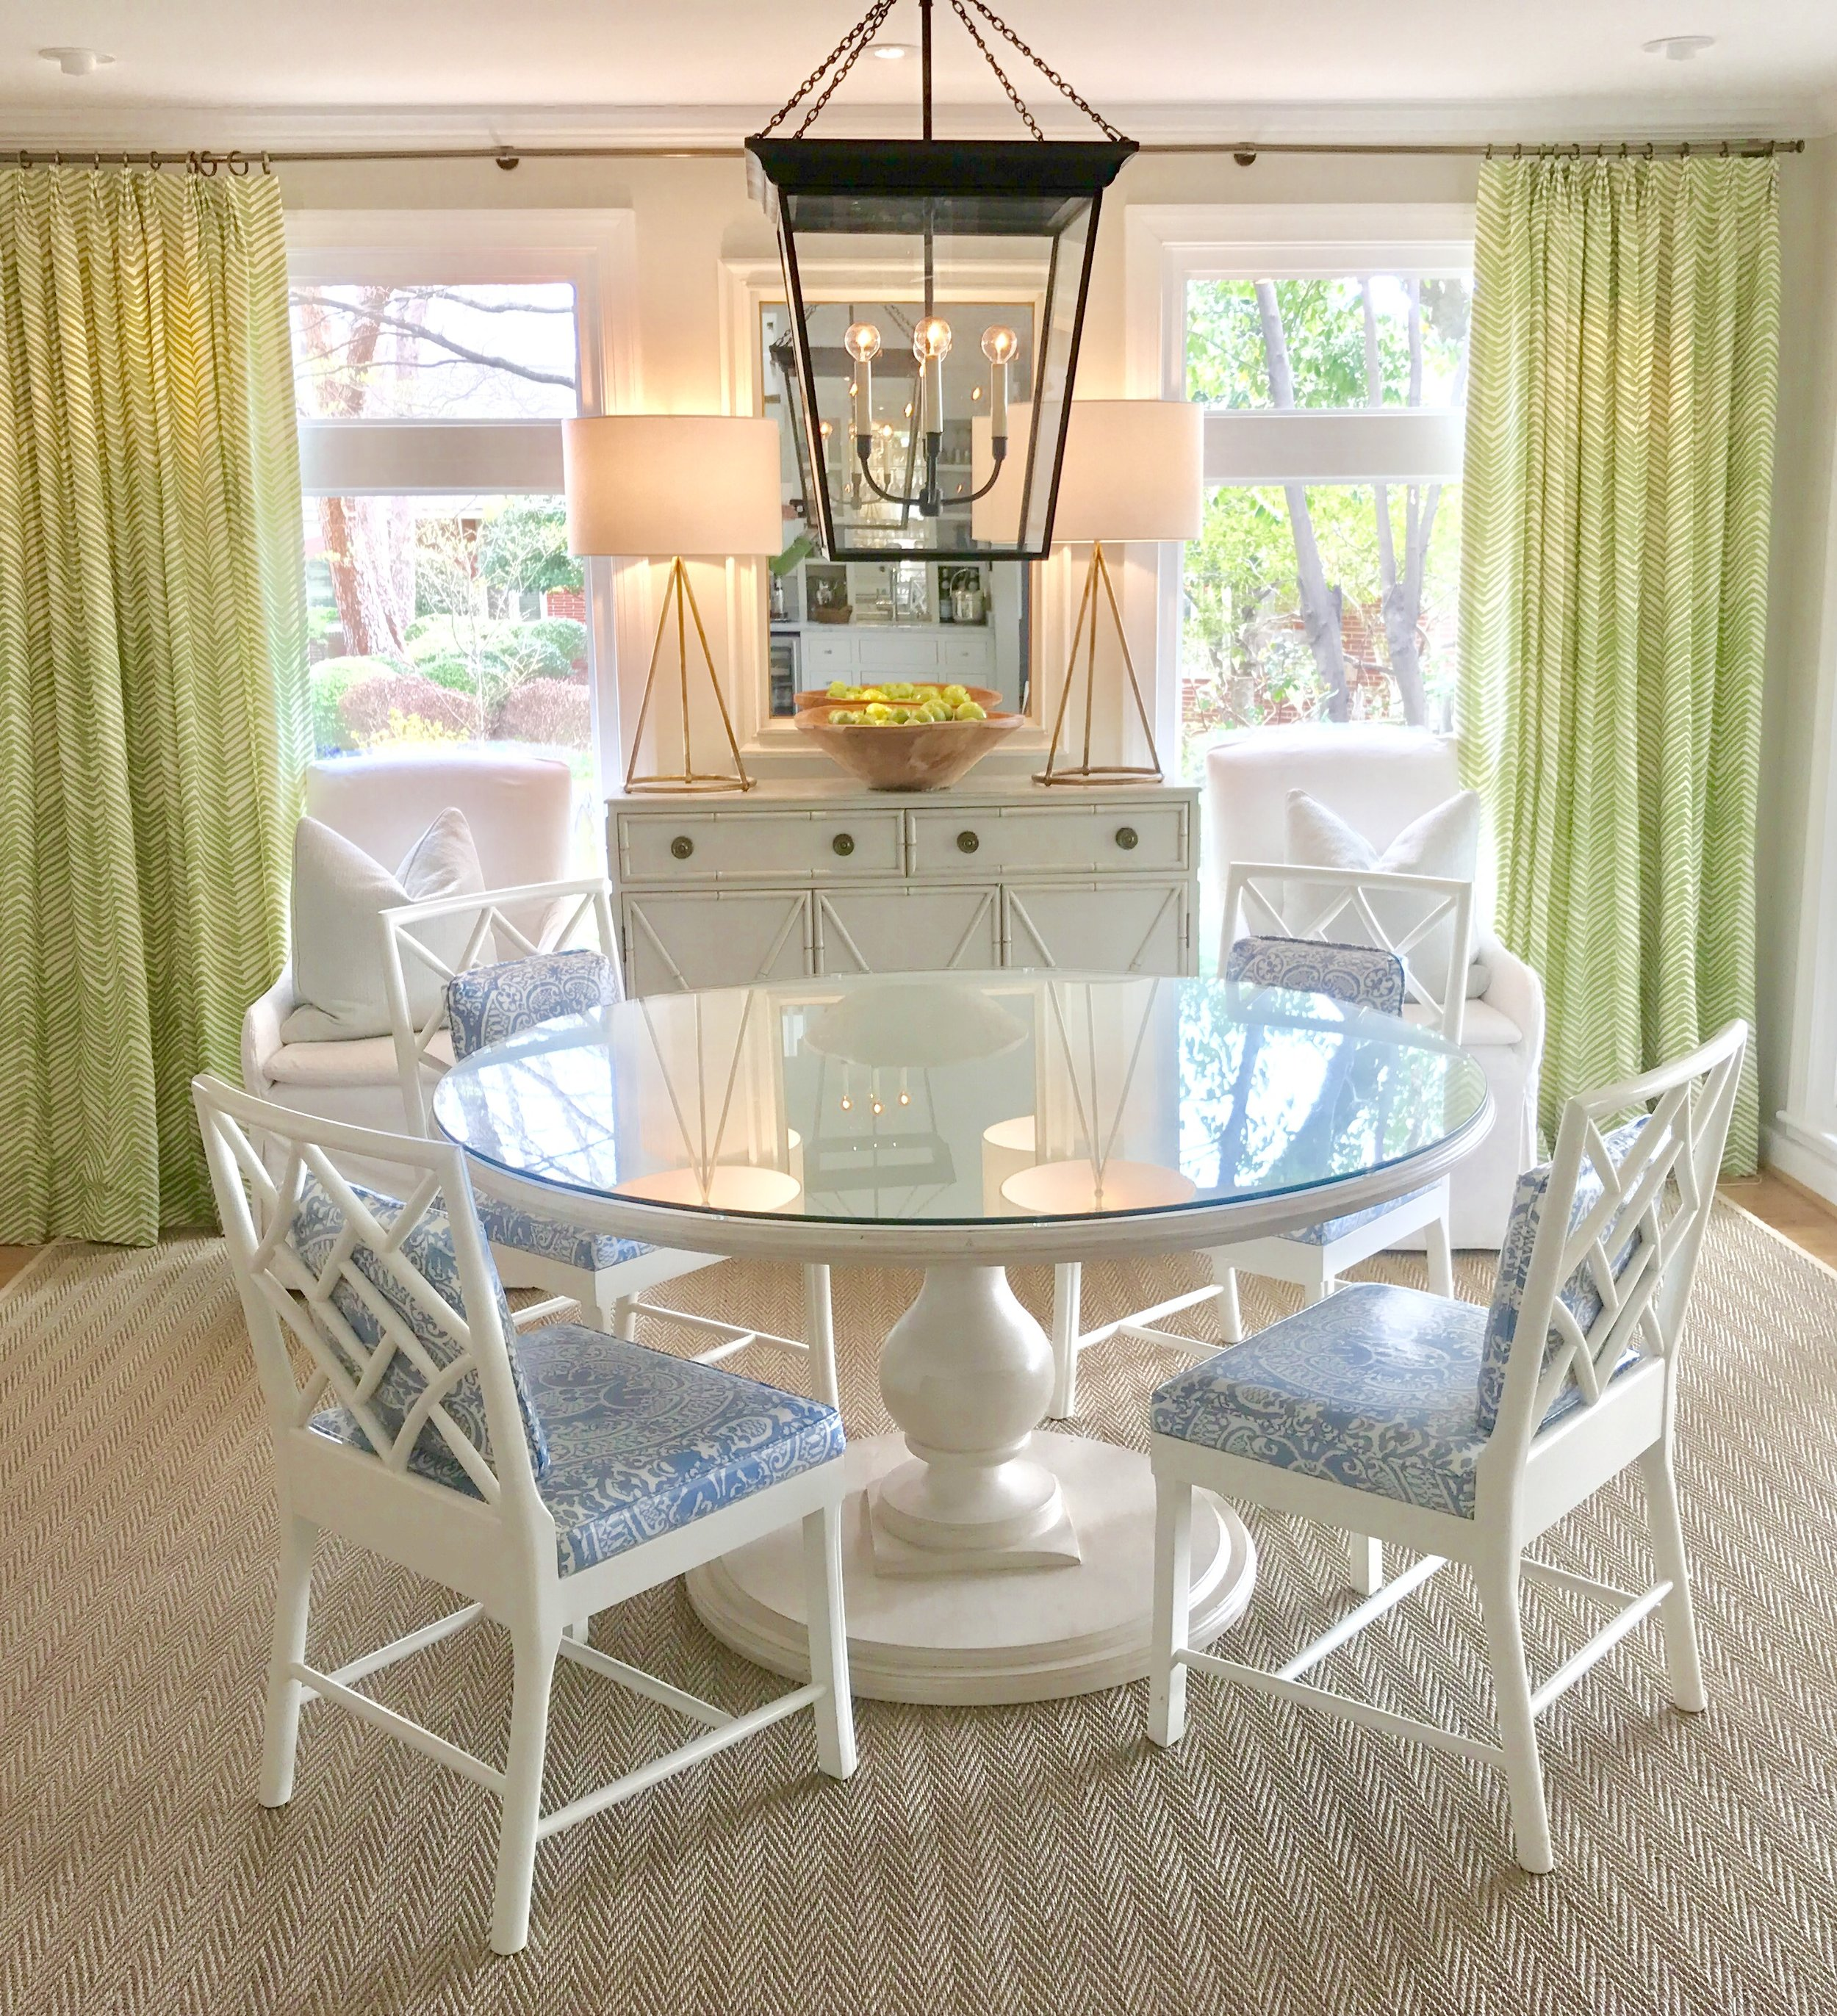 """Renowned Southern interior designer, Lucy Williams, is recognized for the bright, welcoming spaces she creates. For the dining room above, which is her own home, Williams says, """"We live on the water which inspired the color scheme for my house. Since we have a wall of windows, I wanted to bring the outdoors in. The Tritter Feefer pieces really capture the casual but elegant look that I was after.""""    Our classic Baluster dining table in St Moritz finish is the centerpiece of this space."""